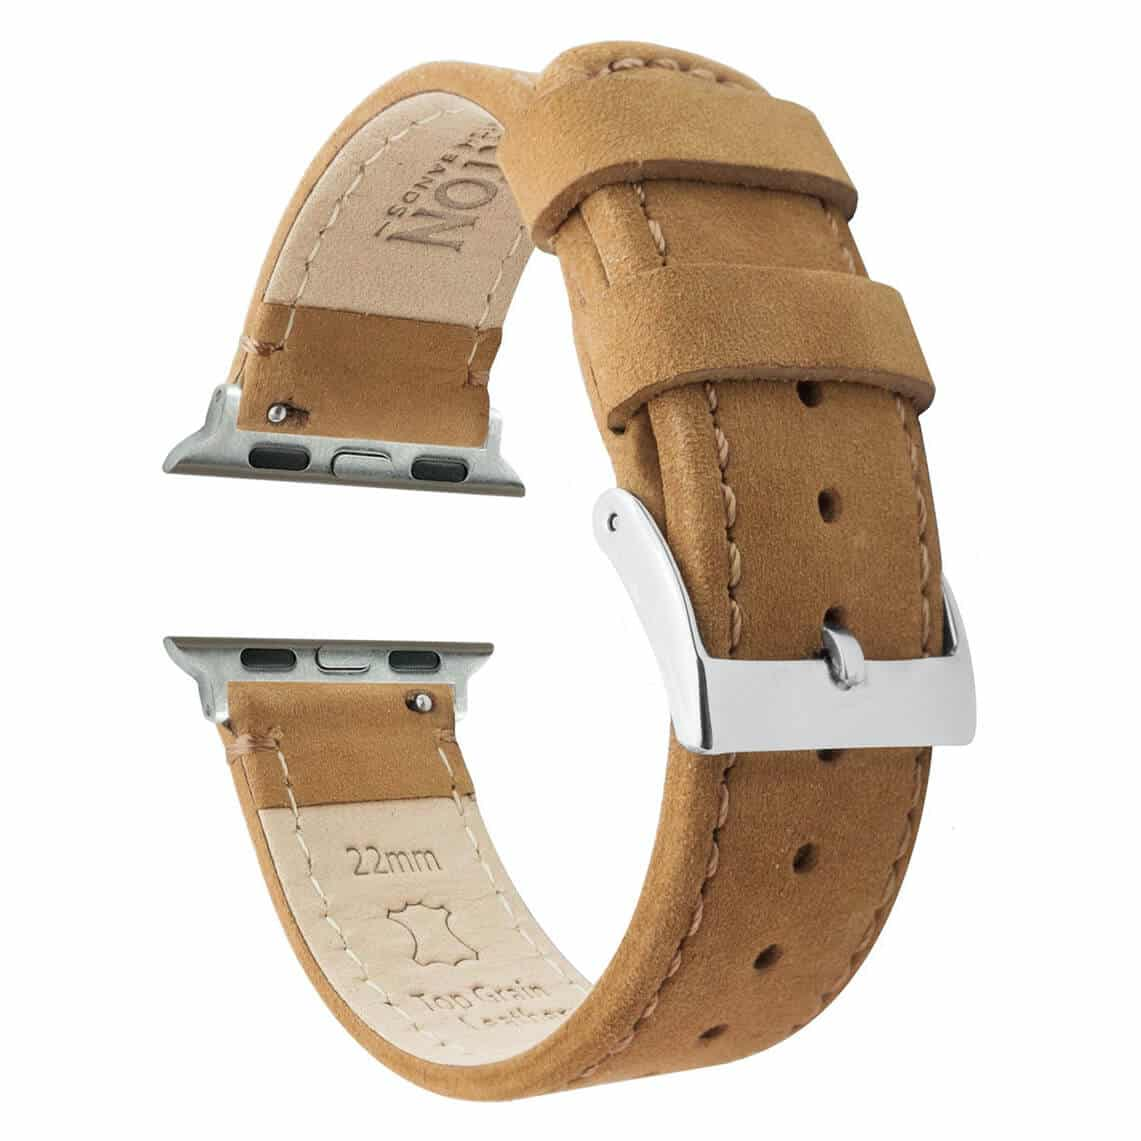 Barton Apple Watch Band with Gingerbread Leather